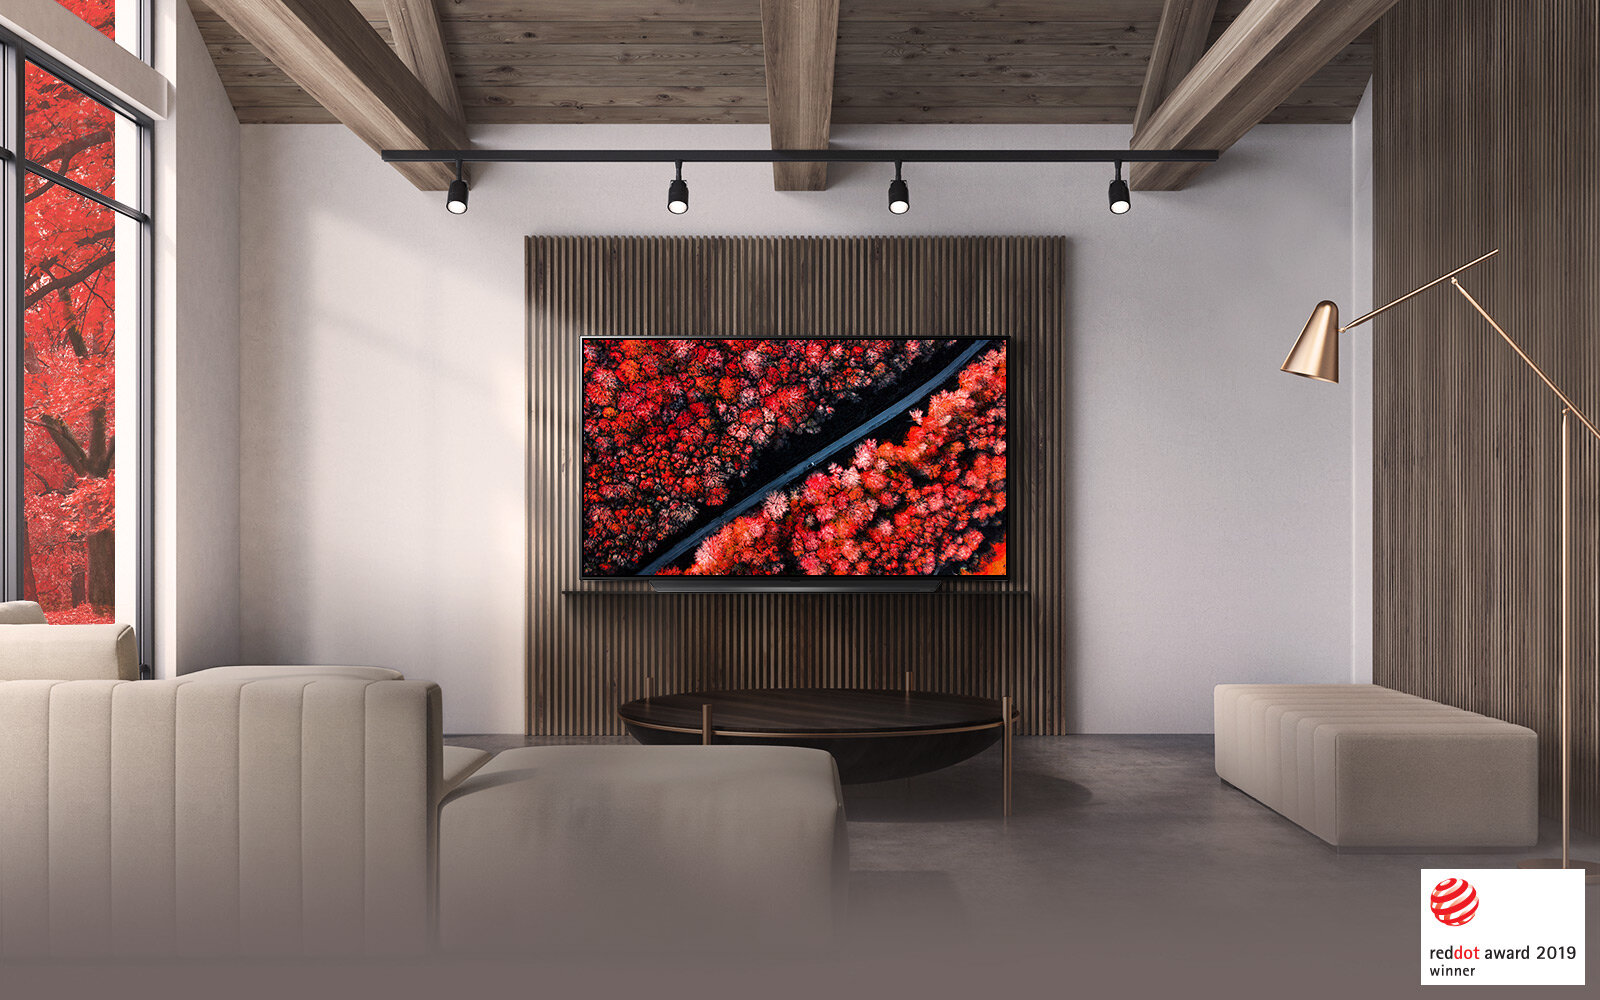 Minimalistic designBlends in to any space - The sophisticated and sleek design of the LG C9 OLED TV seamlessly integrates with your home. LG OLED TV adds a final touch of uniqueness to your carefully curated interior.